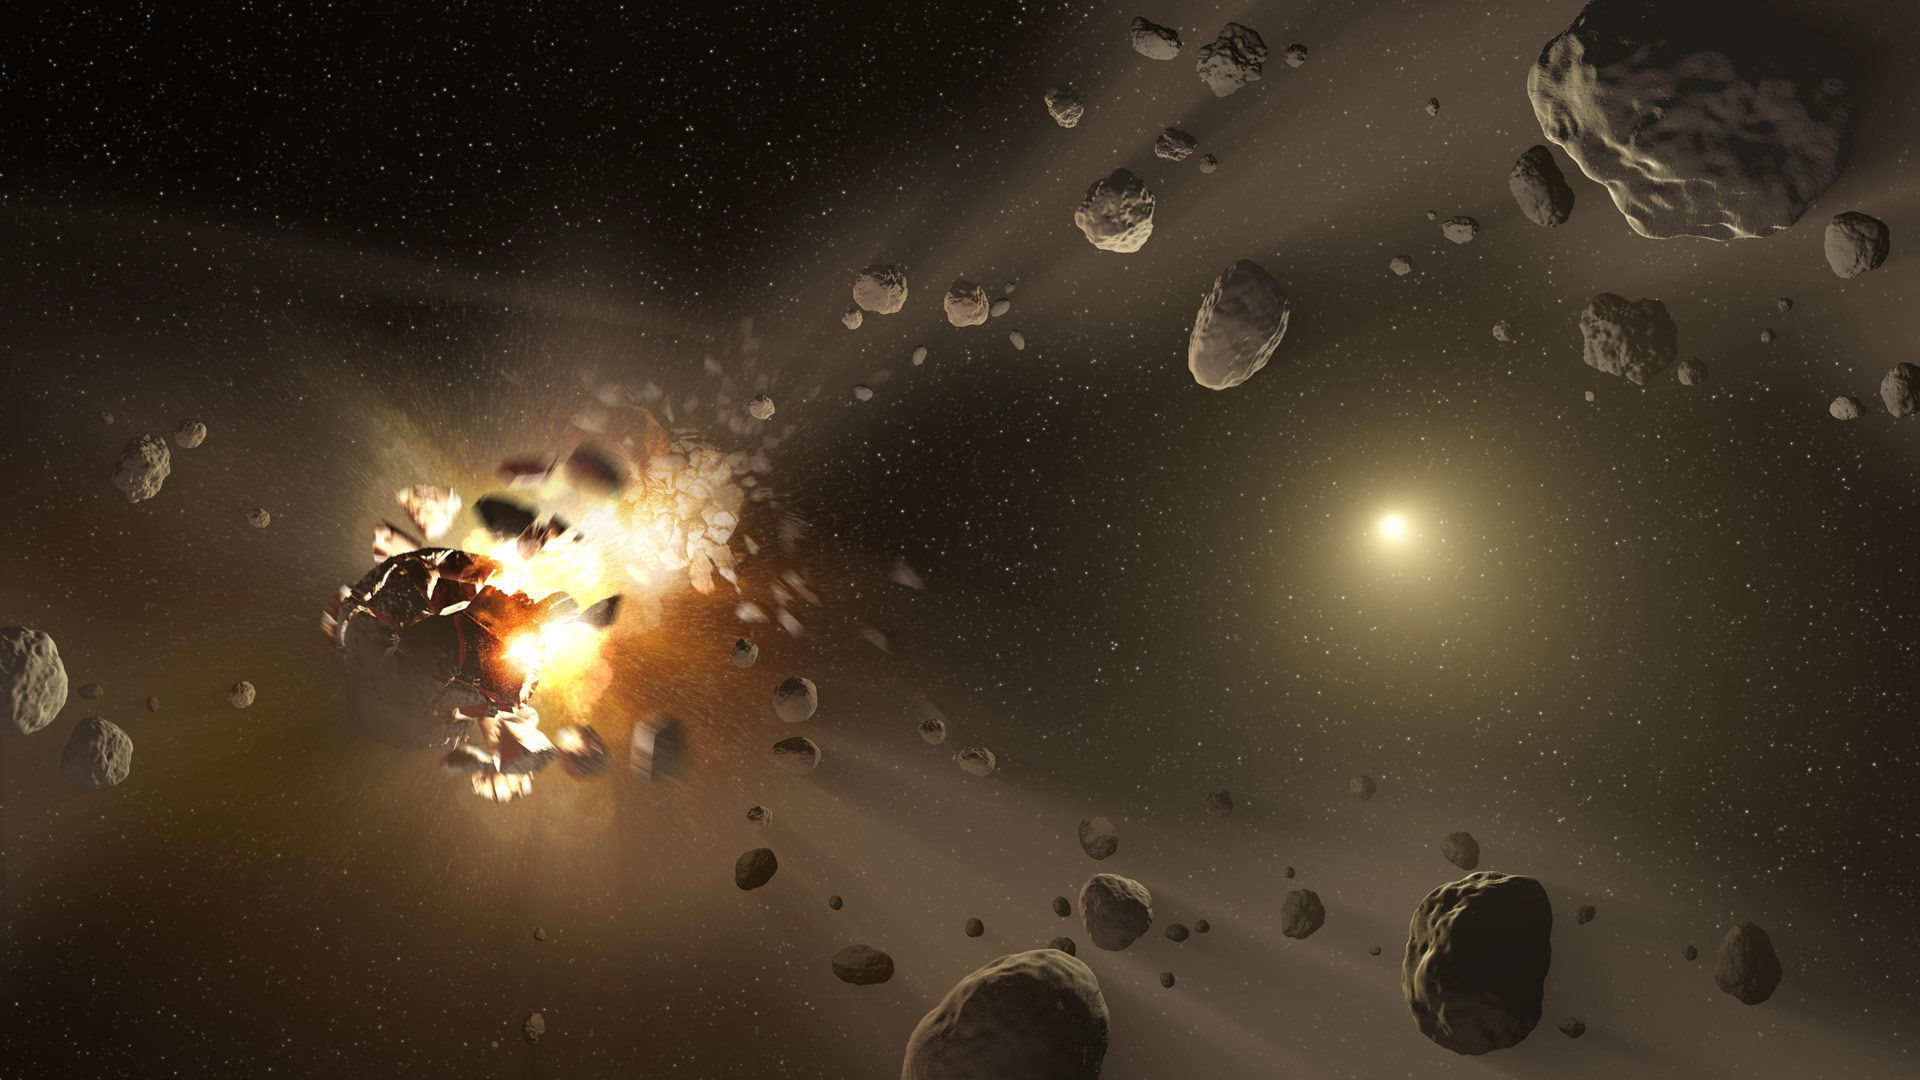 Asteroid Belt Widescreen